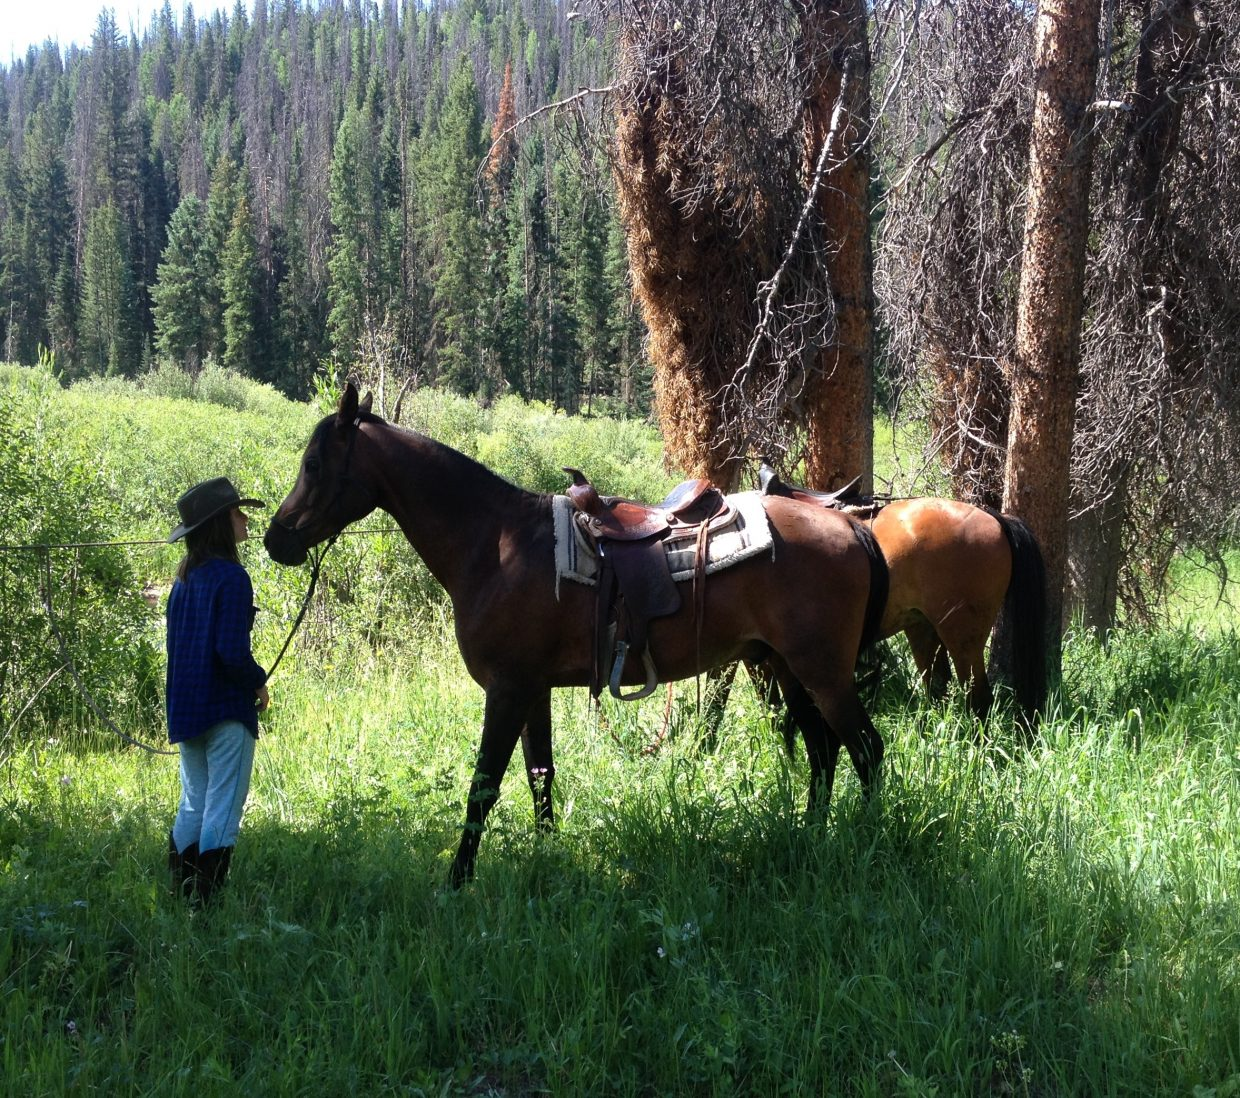 I took my youngest on a ride up the South Fork of the Elk this week, her first trail ride. She did quite well, and got the chance to lead as we crossed the river several times. Here is a photo that shows them sharing a moment when we stopped for a break. I like the colors, and the focus both Dudabug and Grace seem to reflect, but then, I'm partial. Submitted by: Silas Axtell